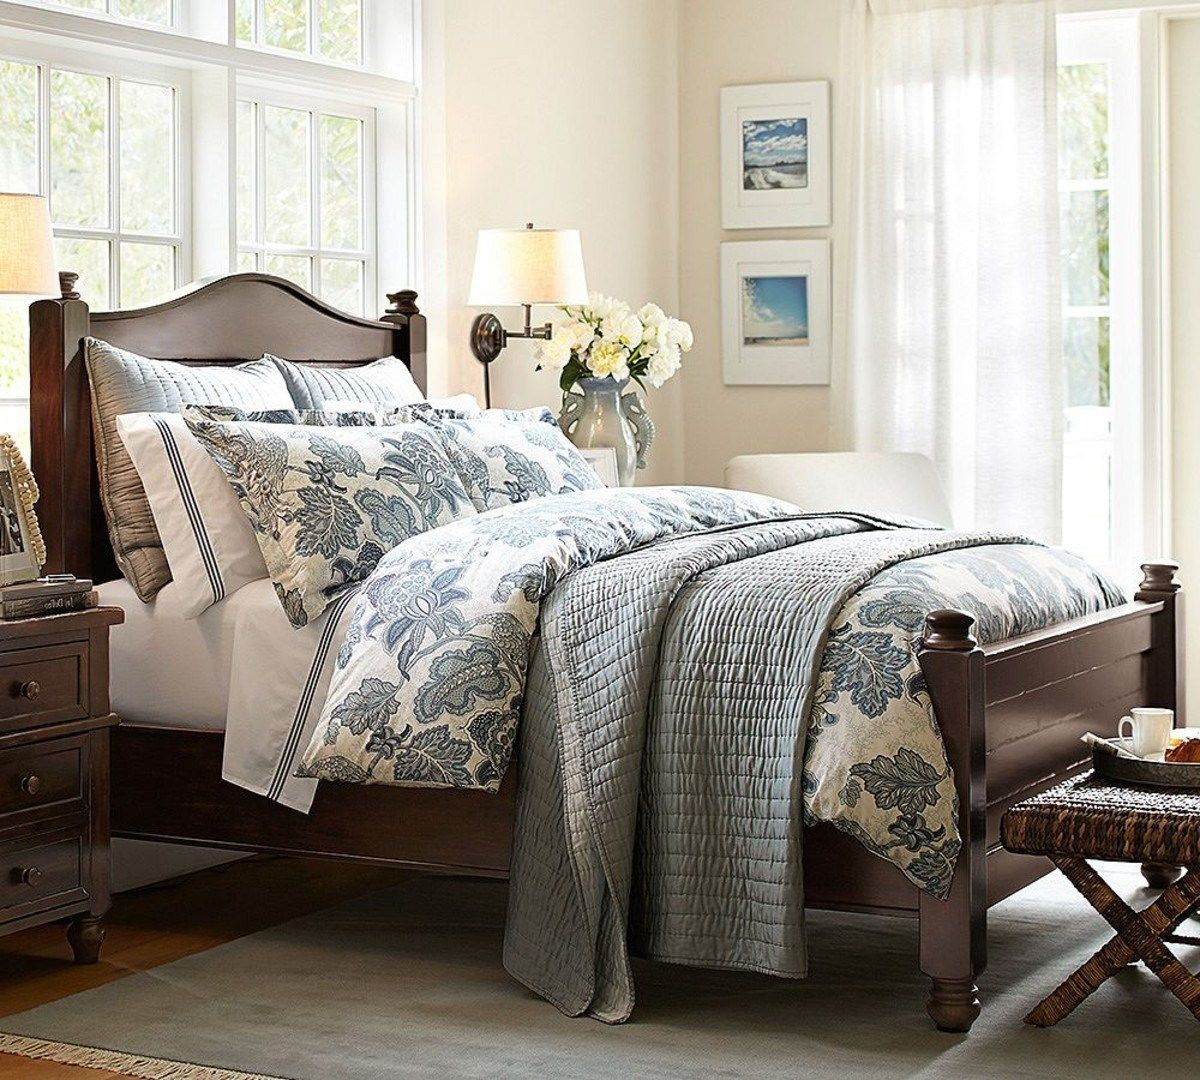 Pottery Barn Bedroom Pottery Barn Bedroom Set Bedroom Furniture